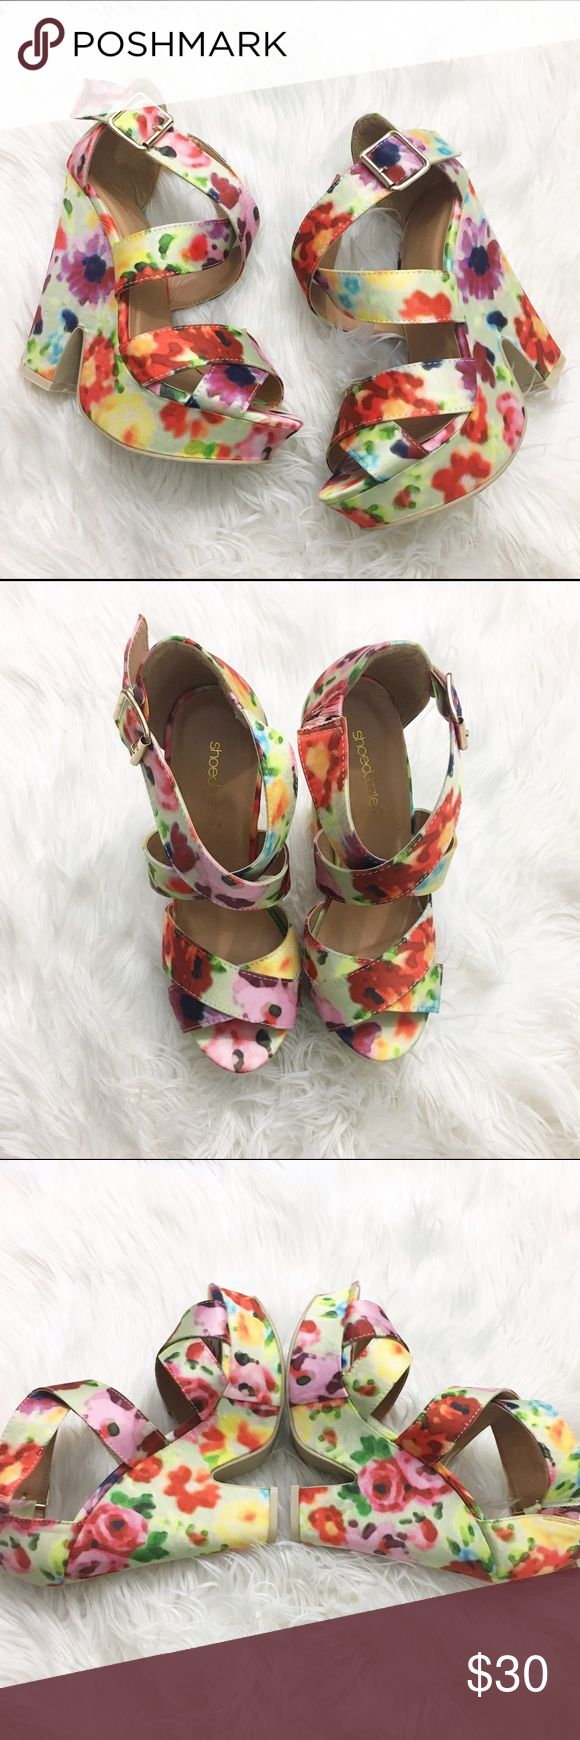 "Shoe dazzle Floral strappy platform summer sandal Perfect for a summer wedding! Size 7, very light signs of wear on the upper, minimal sole wear. 1.5"" platform, 5 1/4"" heel, size 7, run a little big. Shoe Dazzle Shoes Platforms"